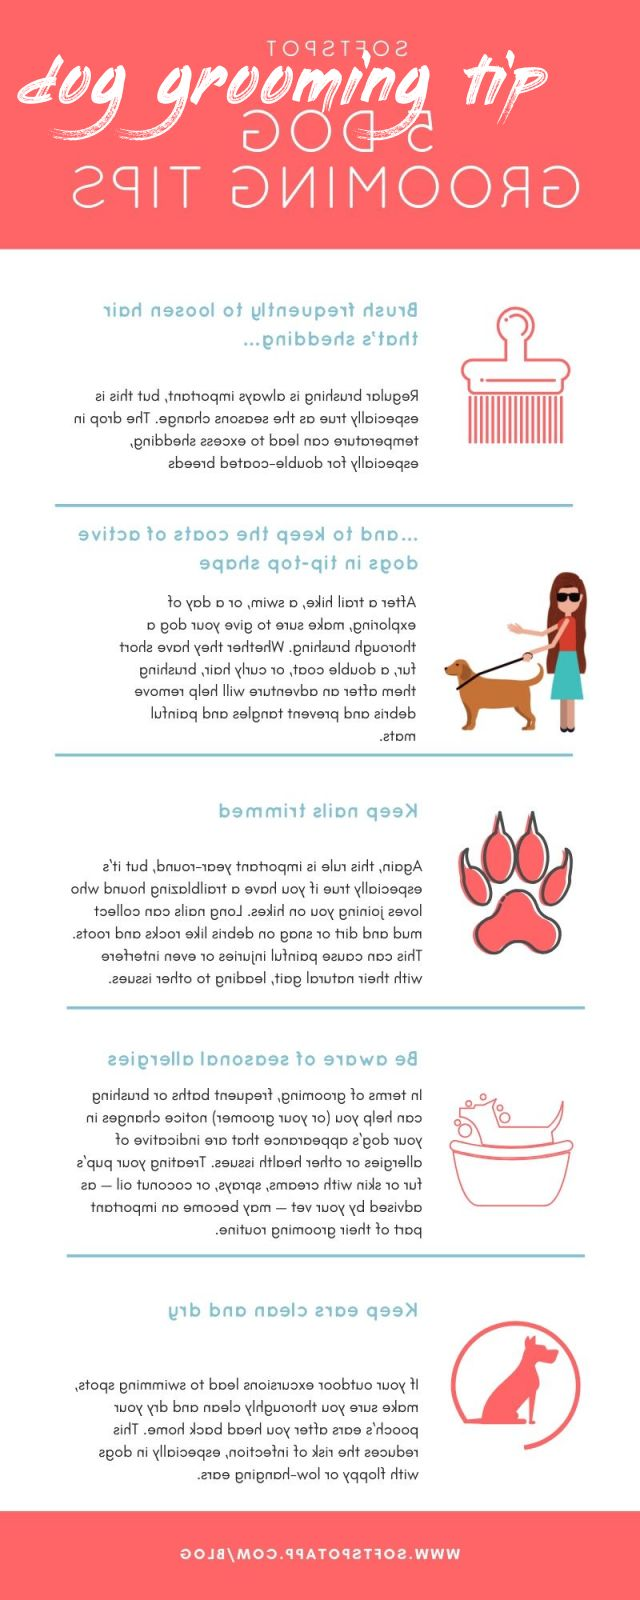 dog grooming tip How To Find